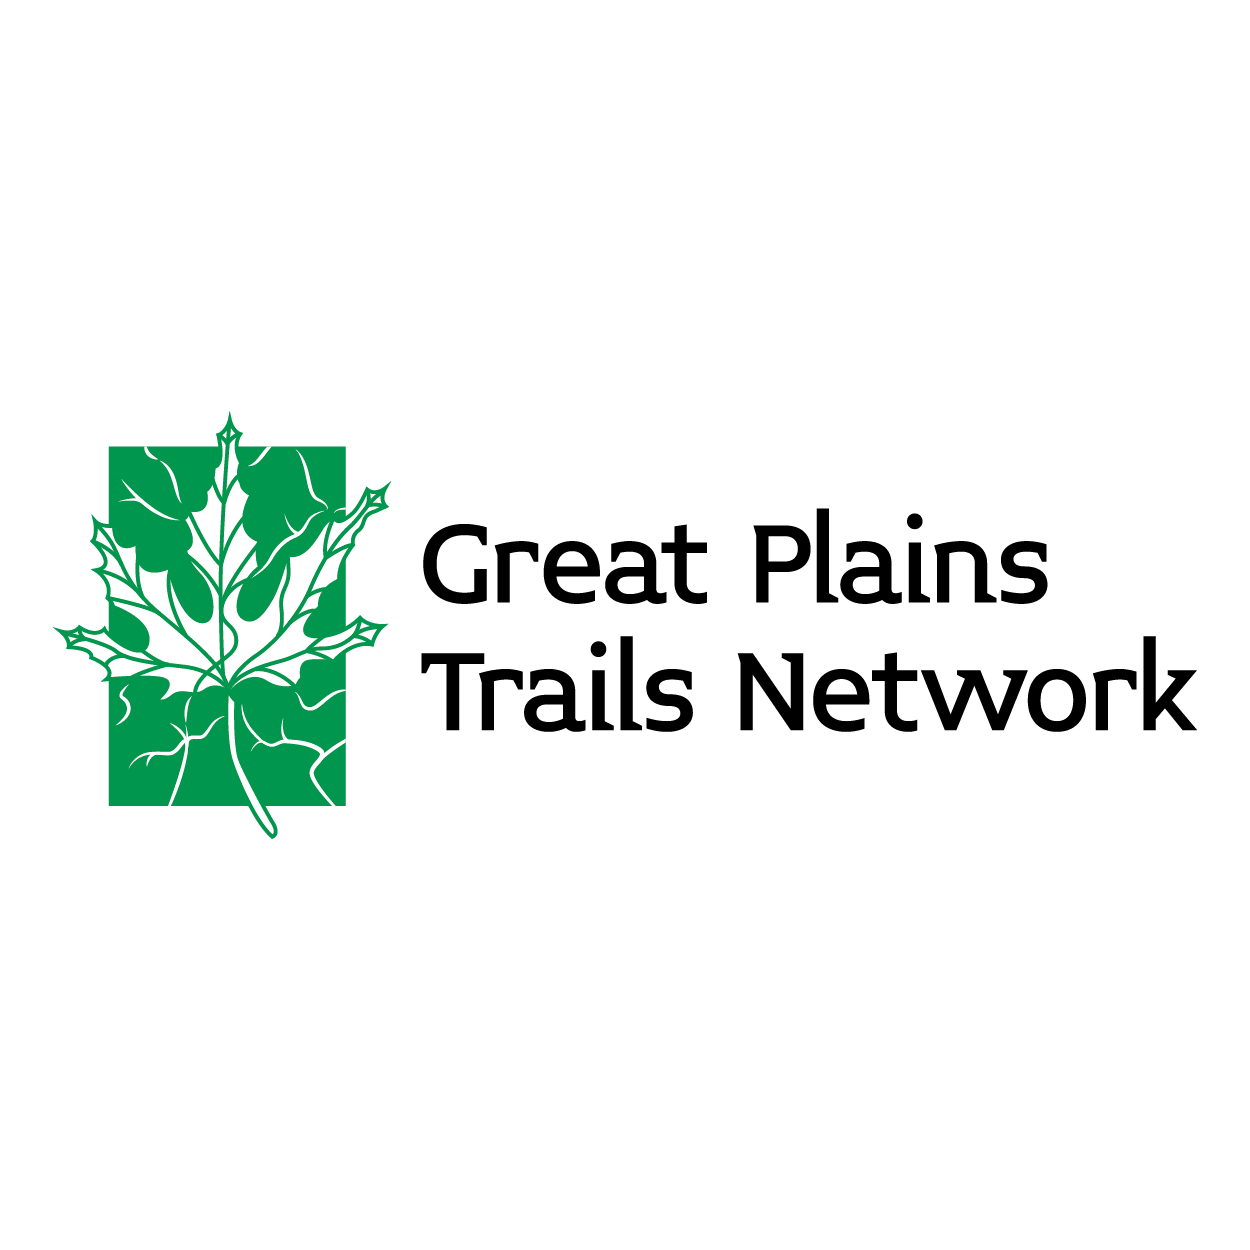 Great Plains Trails Network